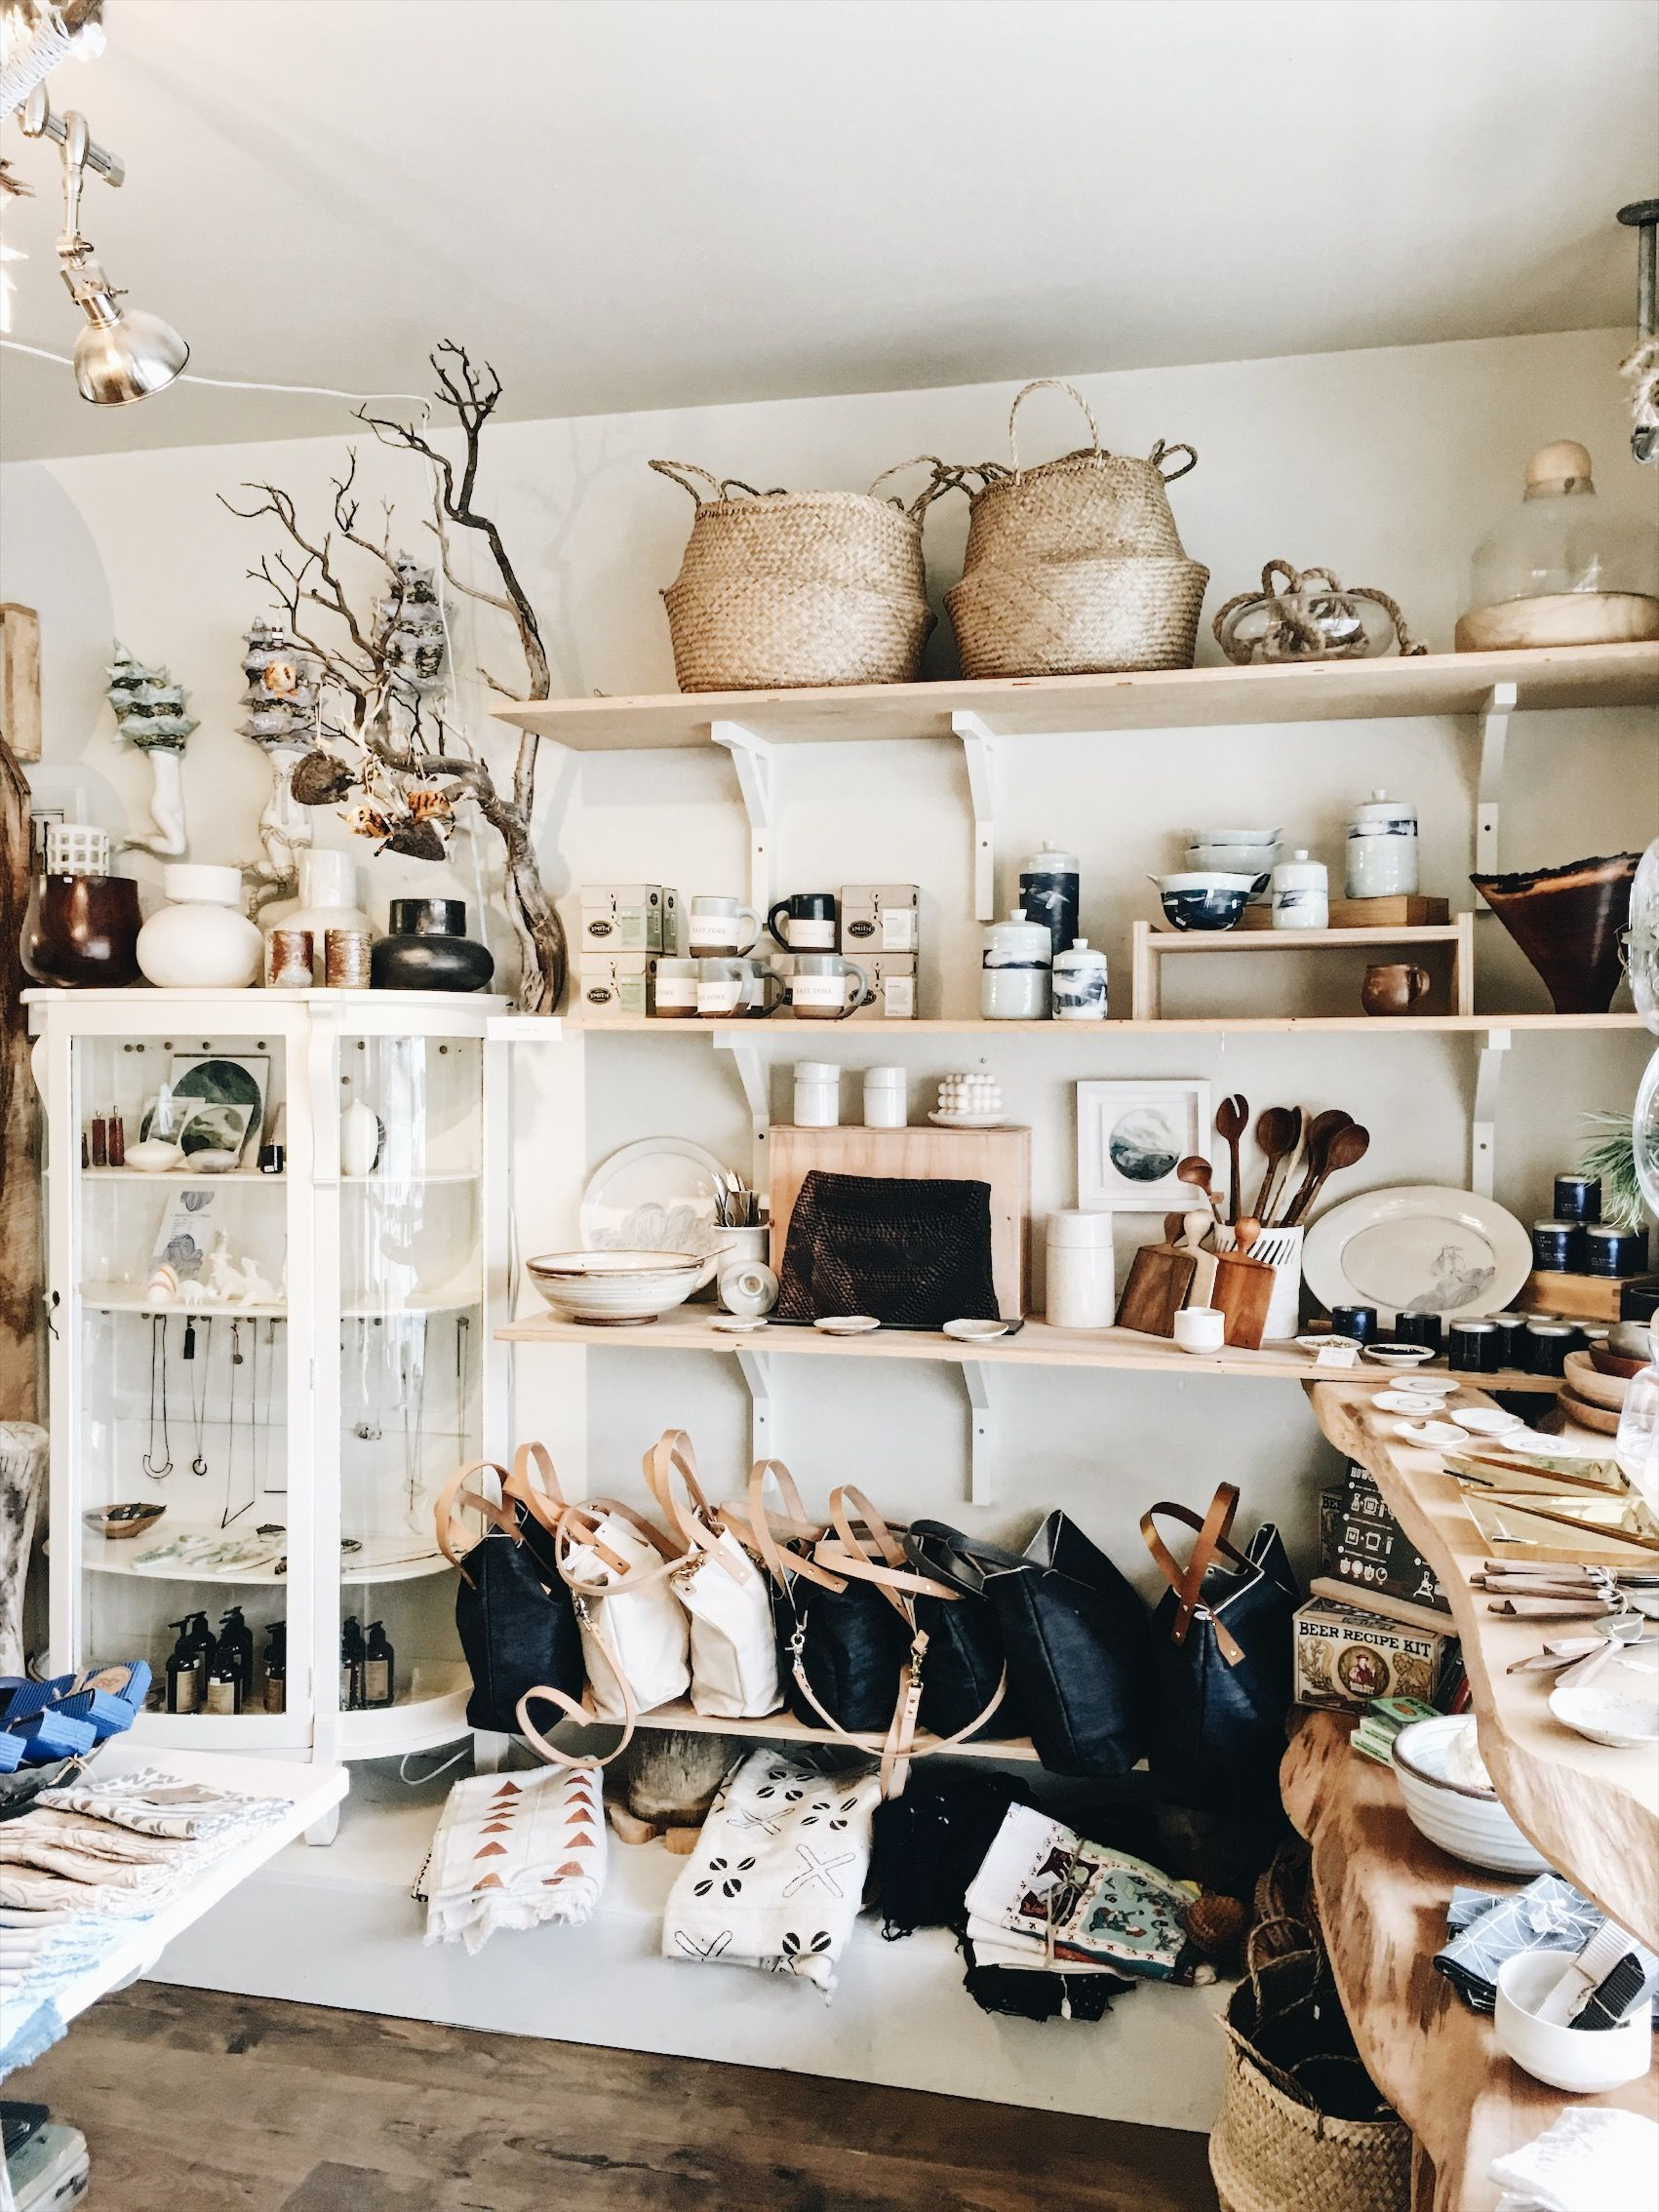 If you are looking to add some bohemian chic california lifesyle to your home here are best bohemian shops in california by california weekend